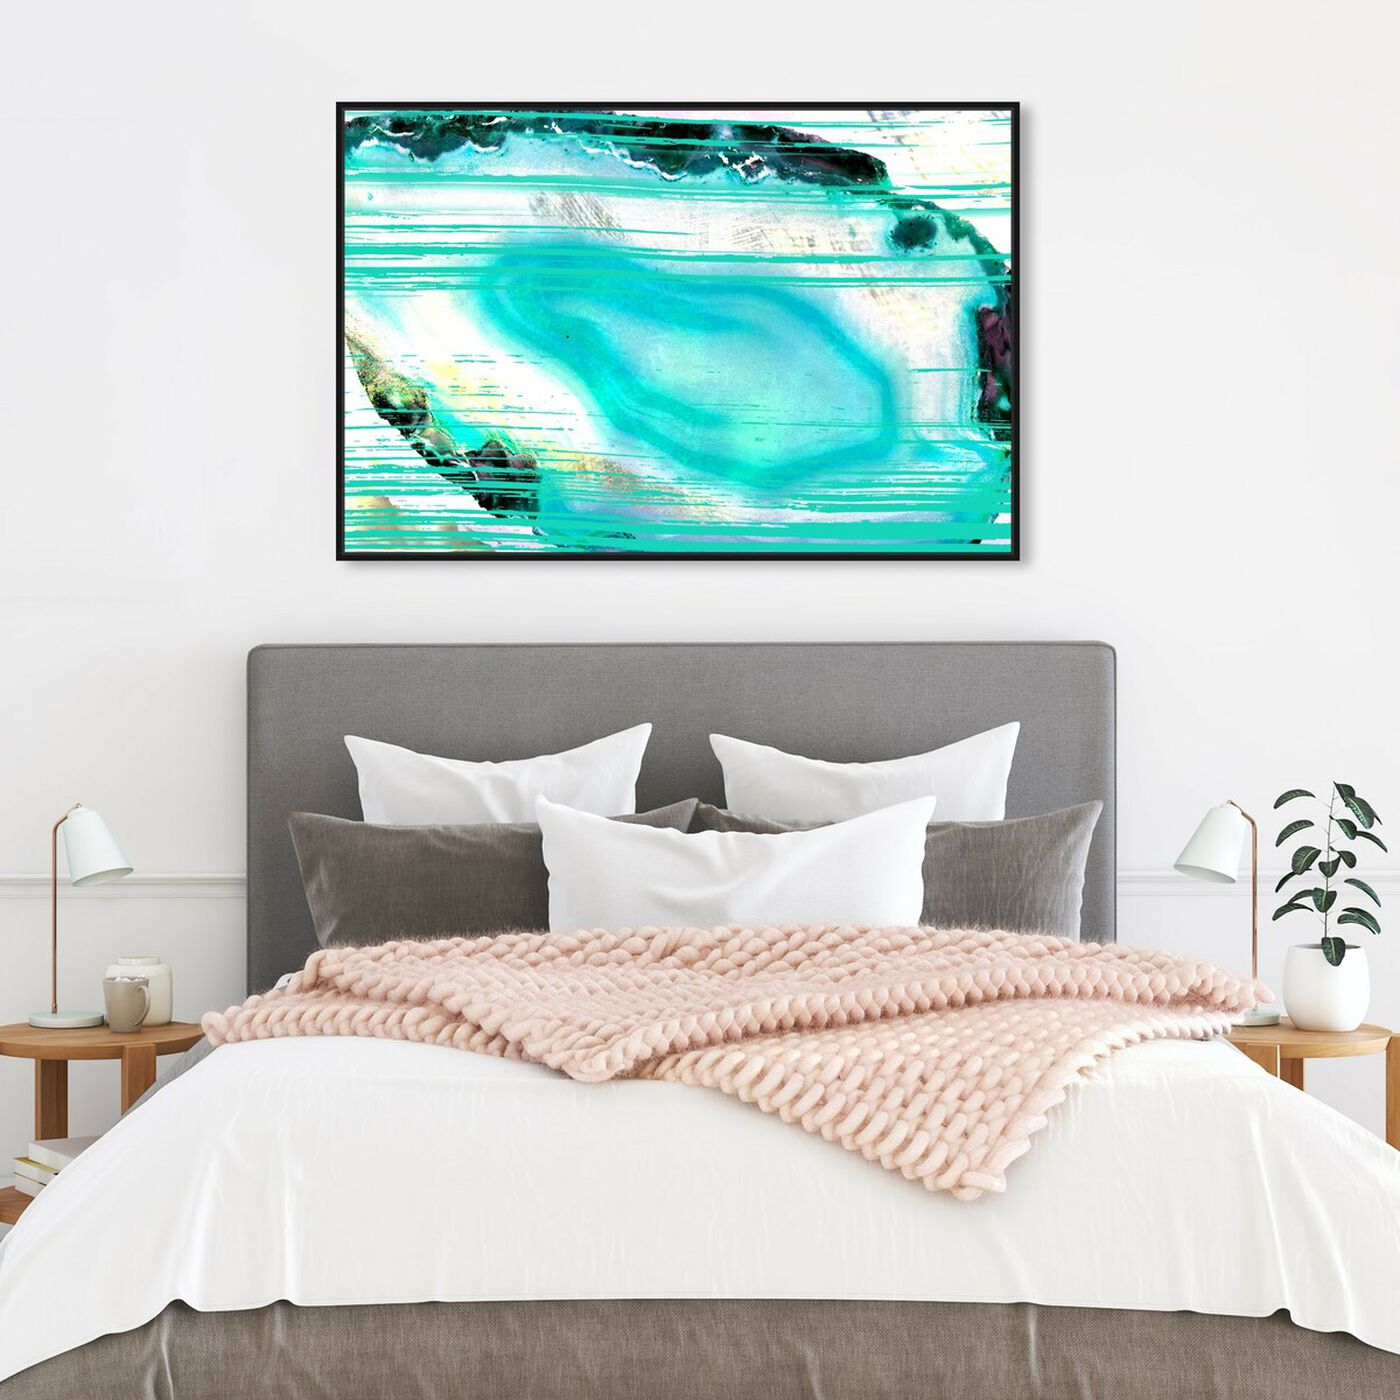 Hanging view of Agate Turca - Signature Collection featuring abstract and crystals art.